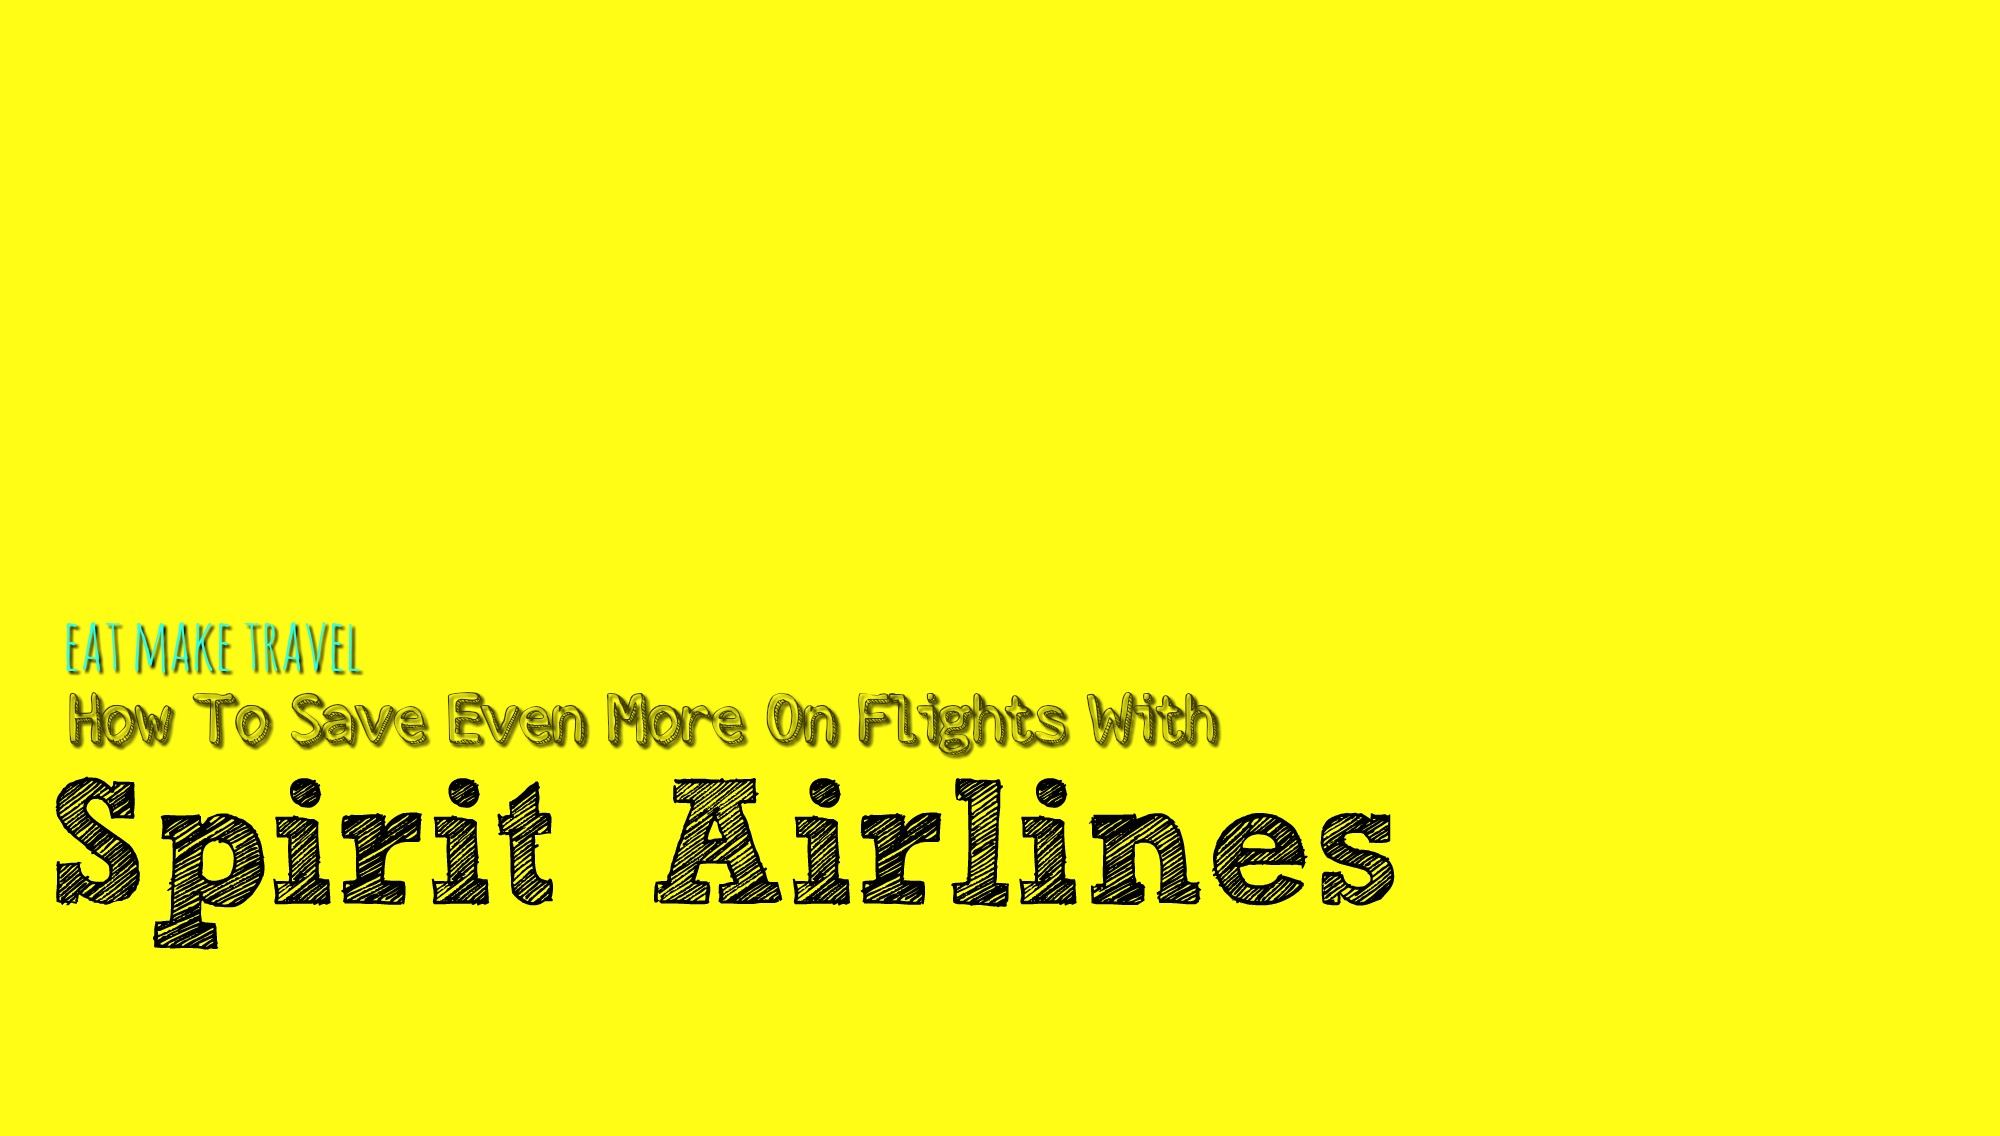 Save Even More on Tickets with Spirit Airlines!